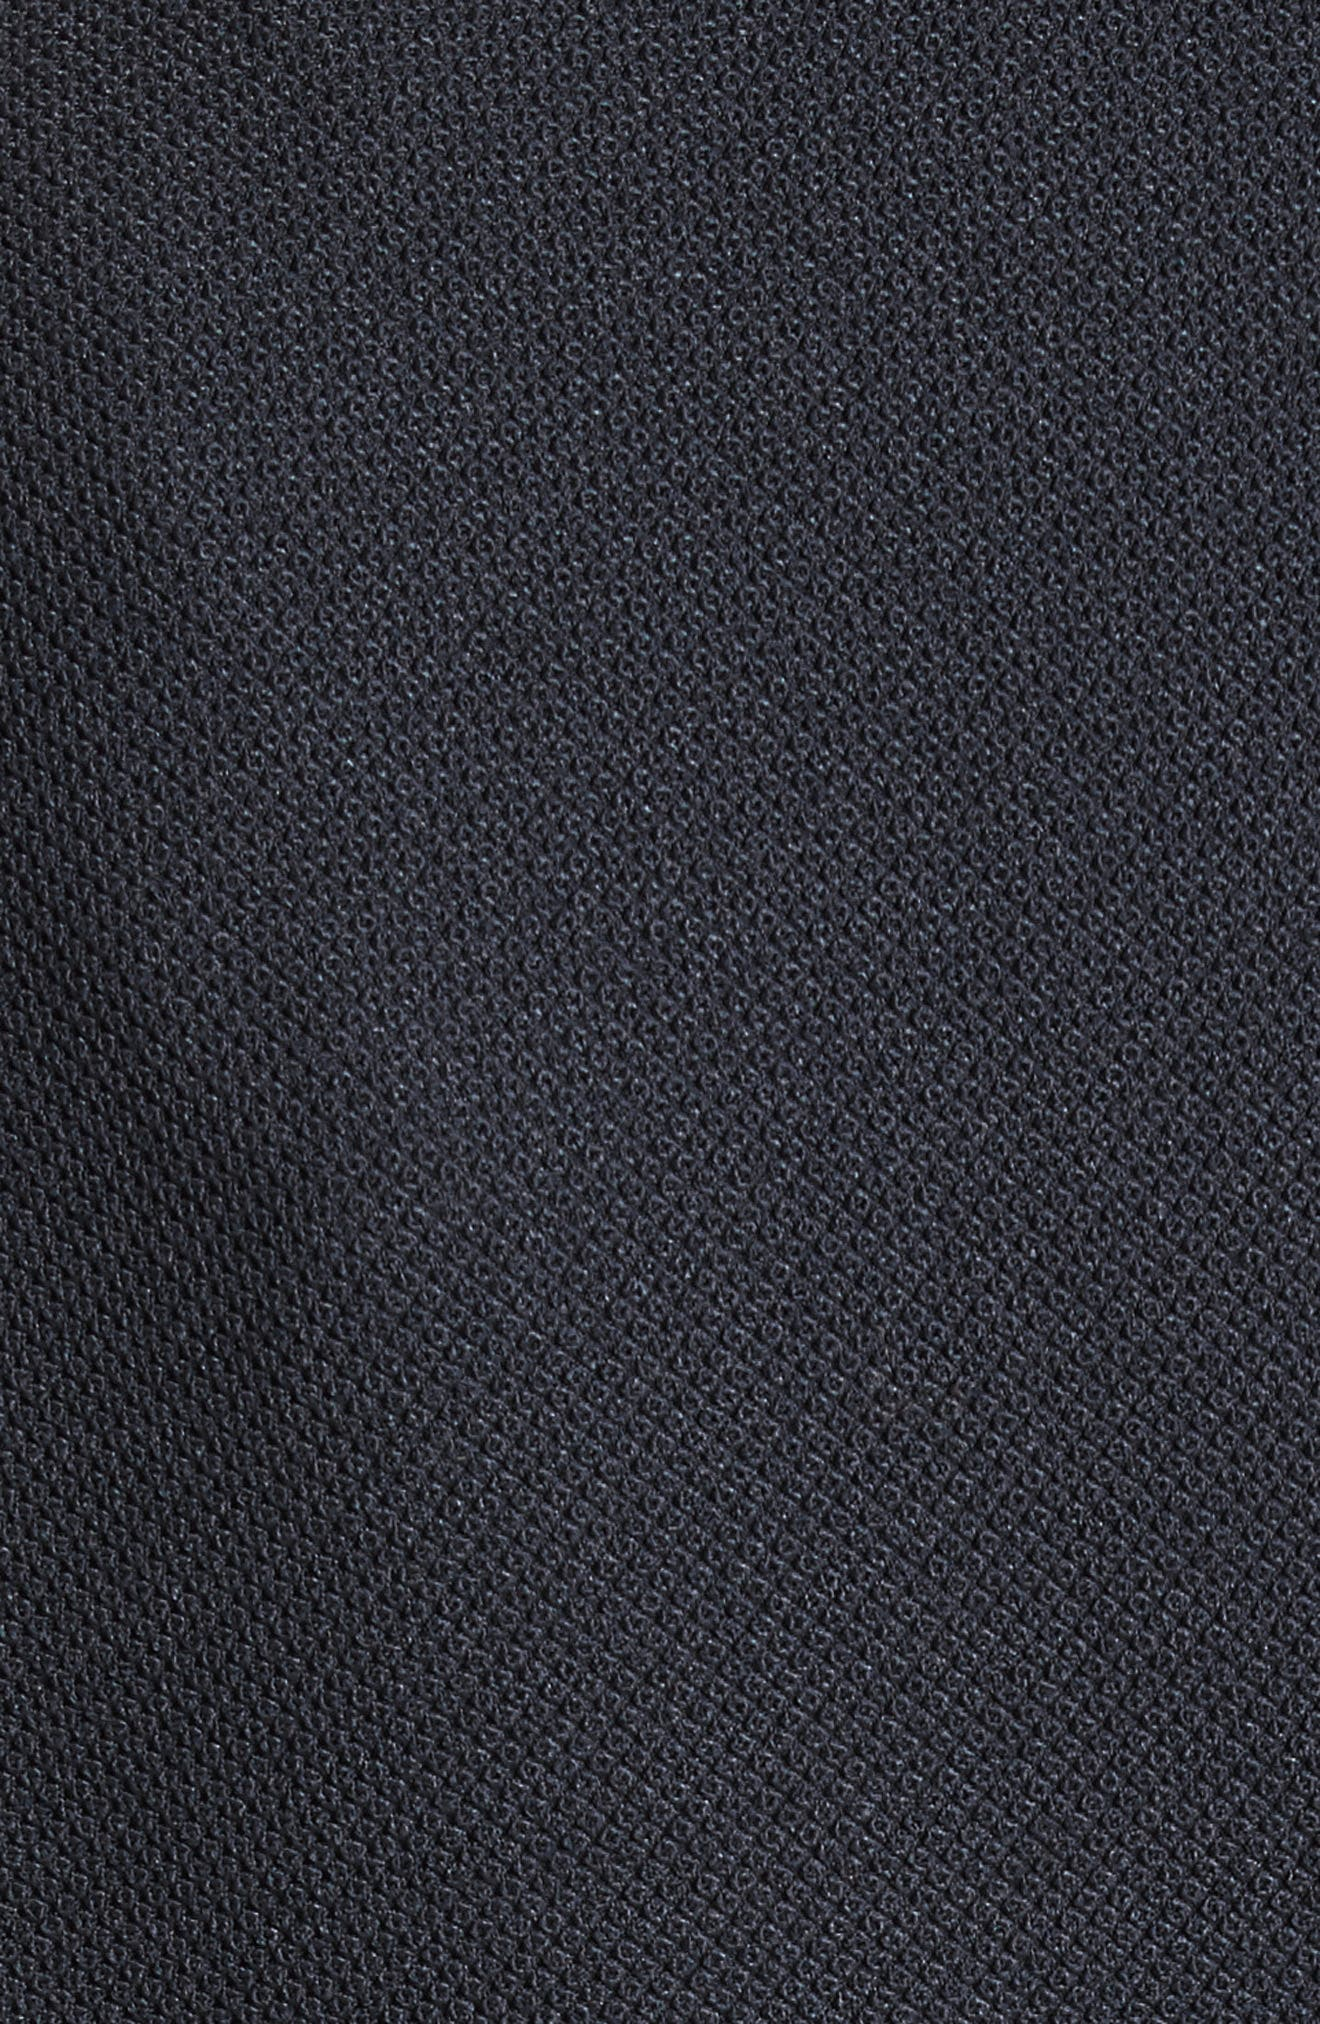 Armani Jeans Piqué Double Breasted Blazer,                             Alternate thumbnail 5, color,                             Navy